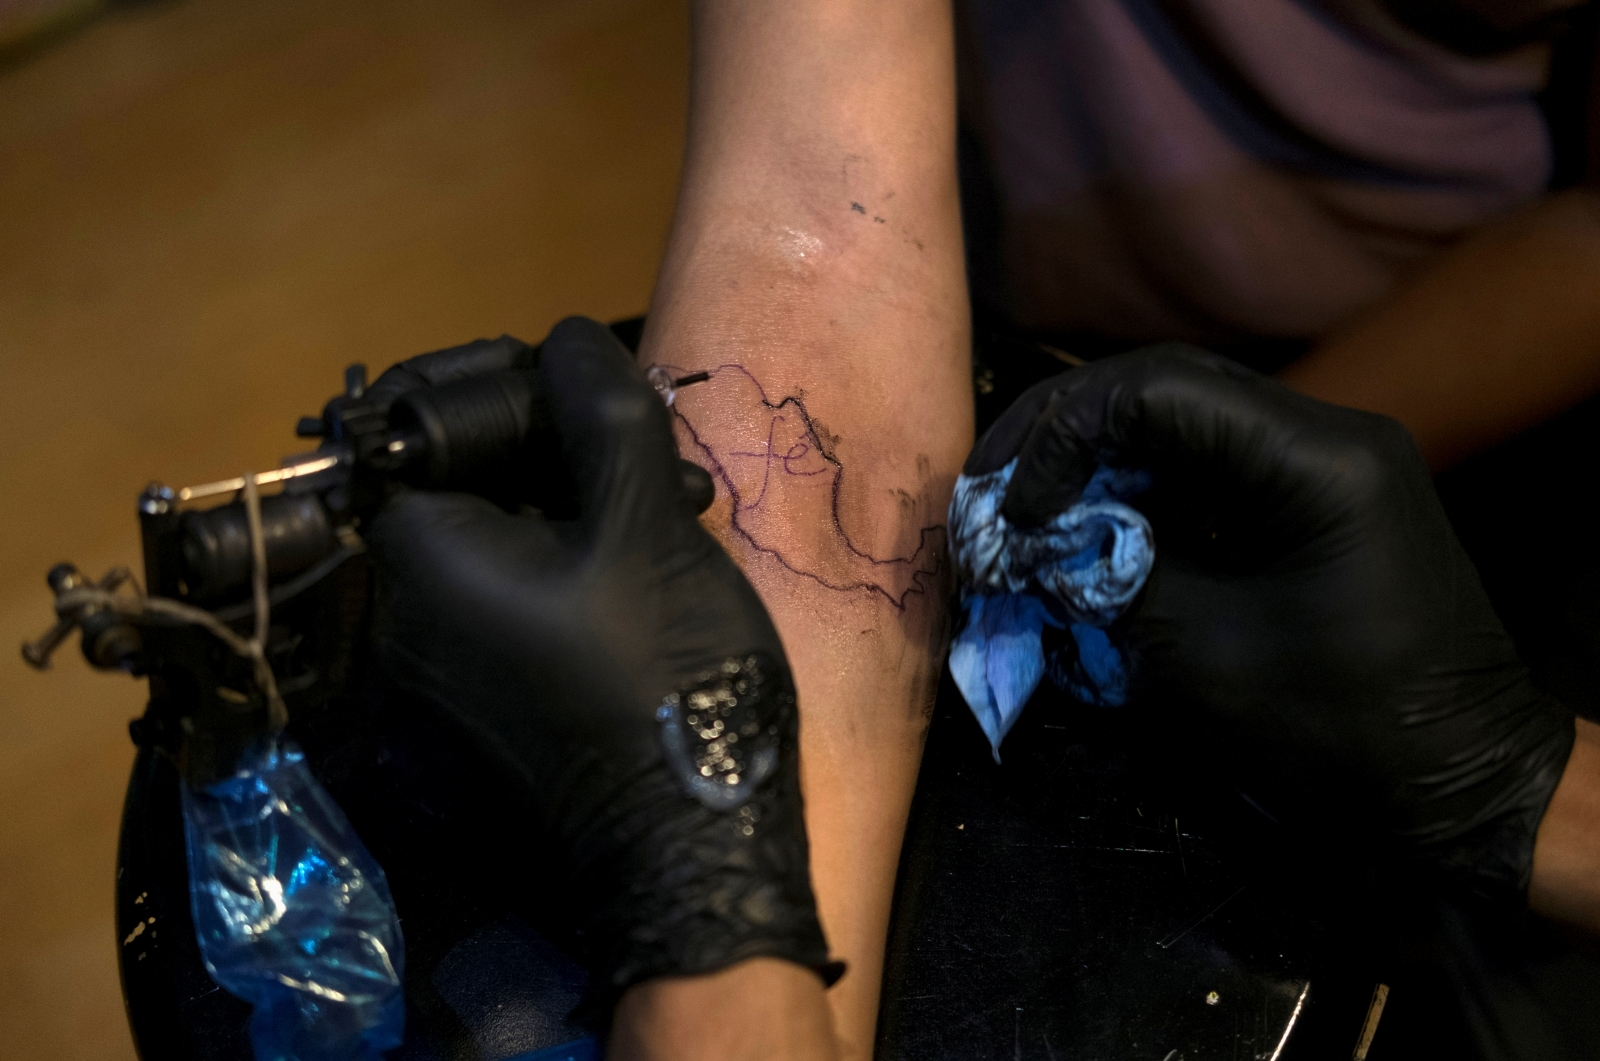 Color-changing Tattoo Ink Could Monitor Medical Conditions